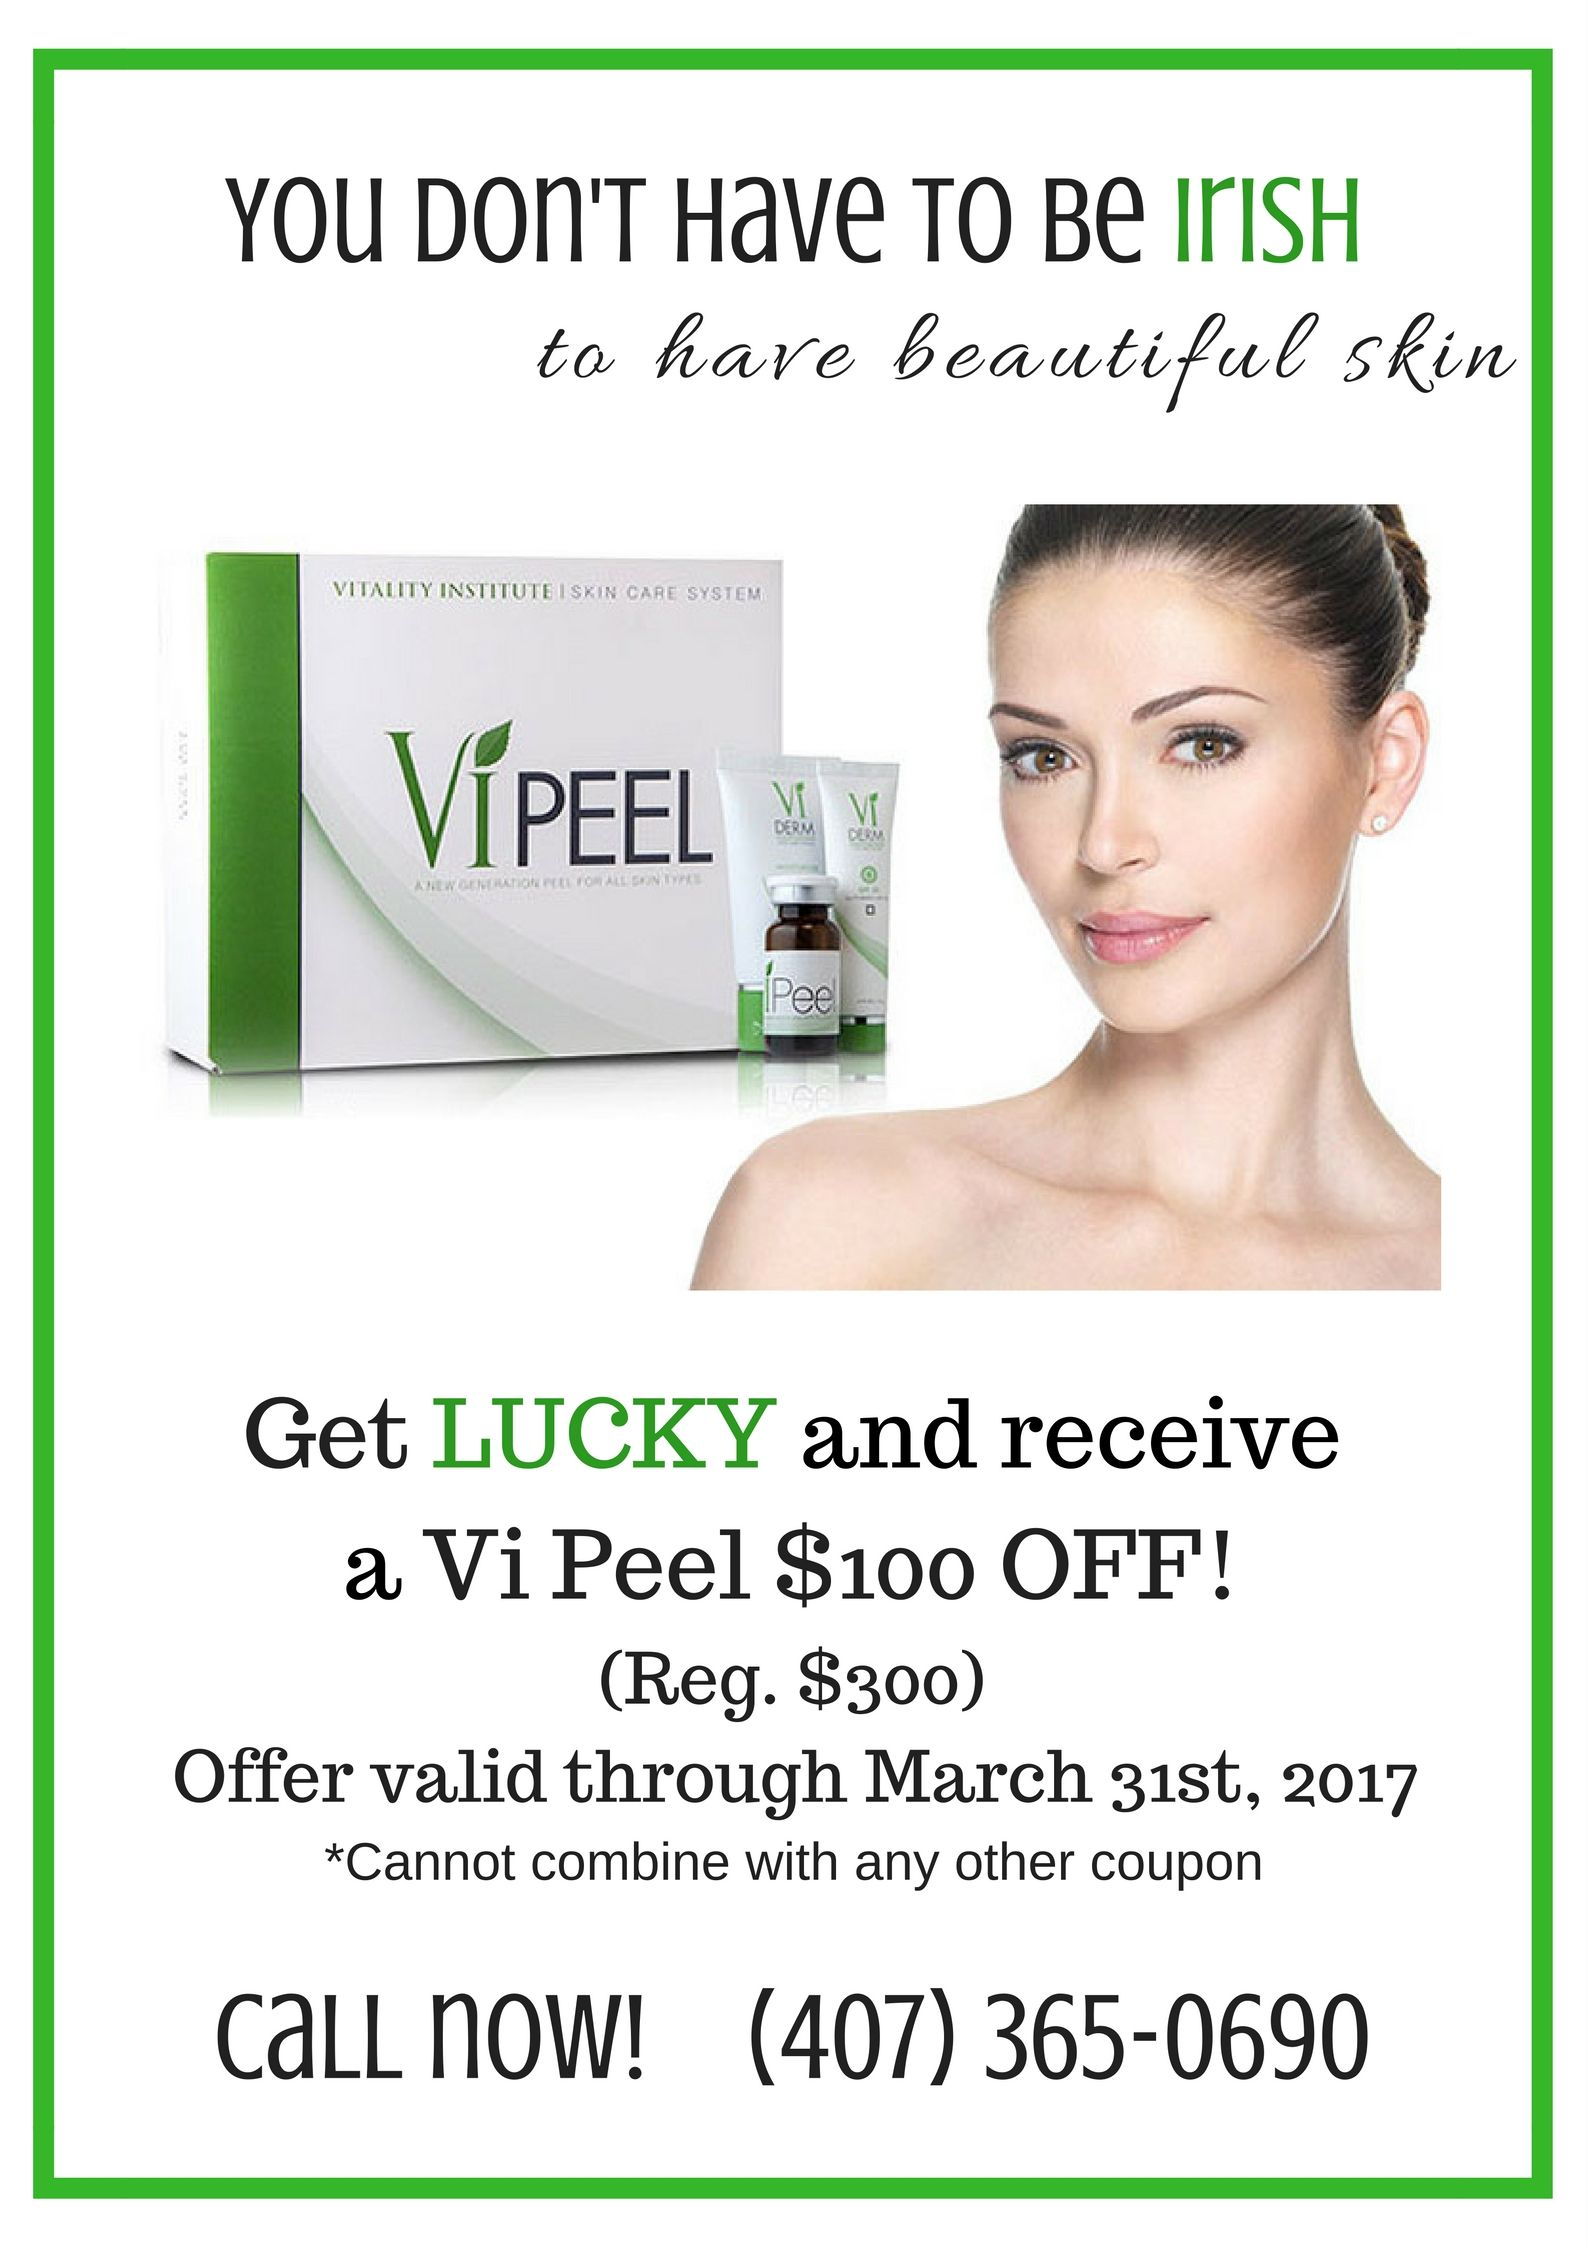 Lucky You 100 Off The Vi Peel For The Month Of March Call Now 4073650690 Medical Spa Beautiful Skin Medical